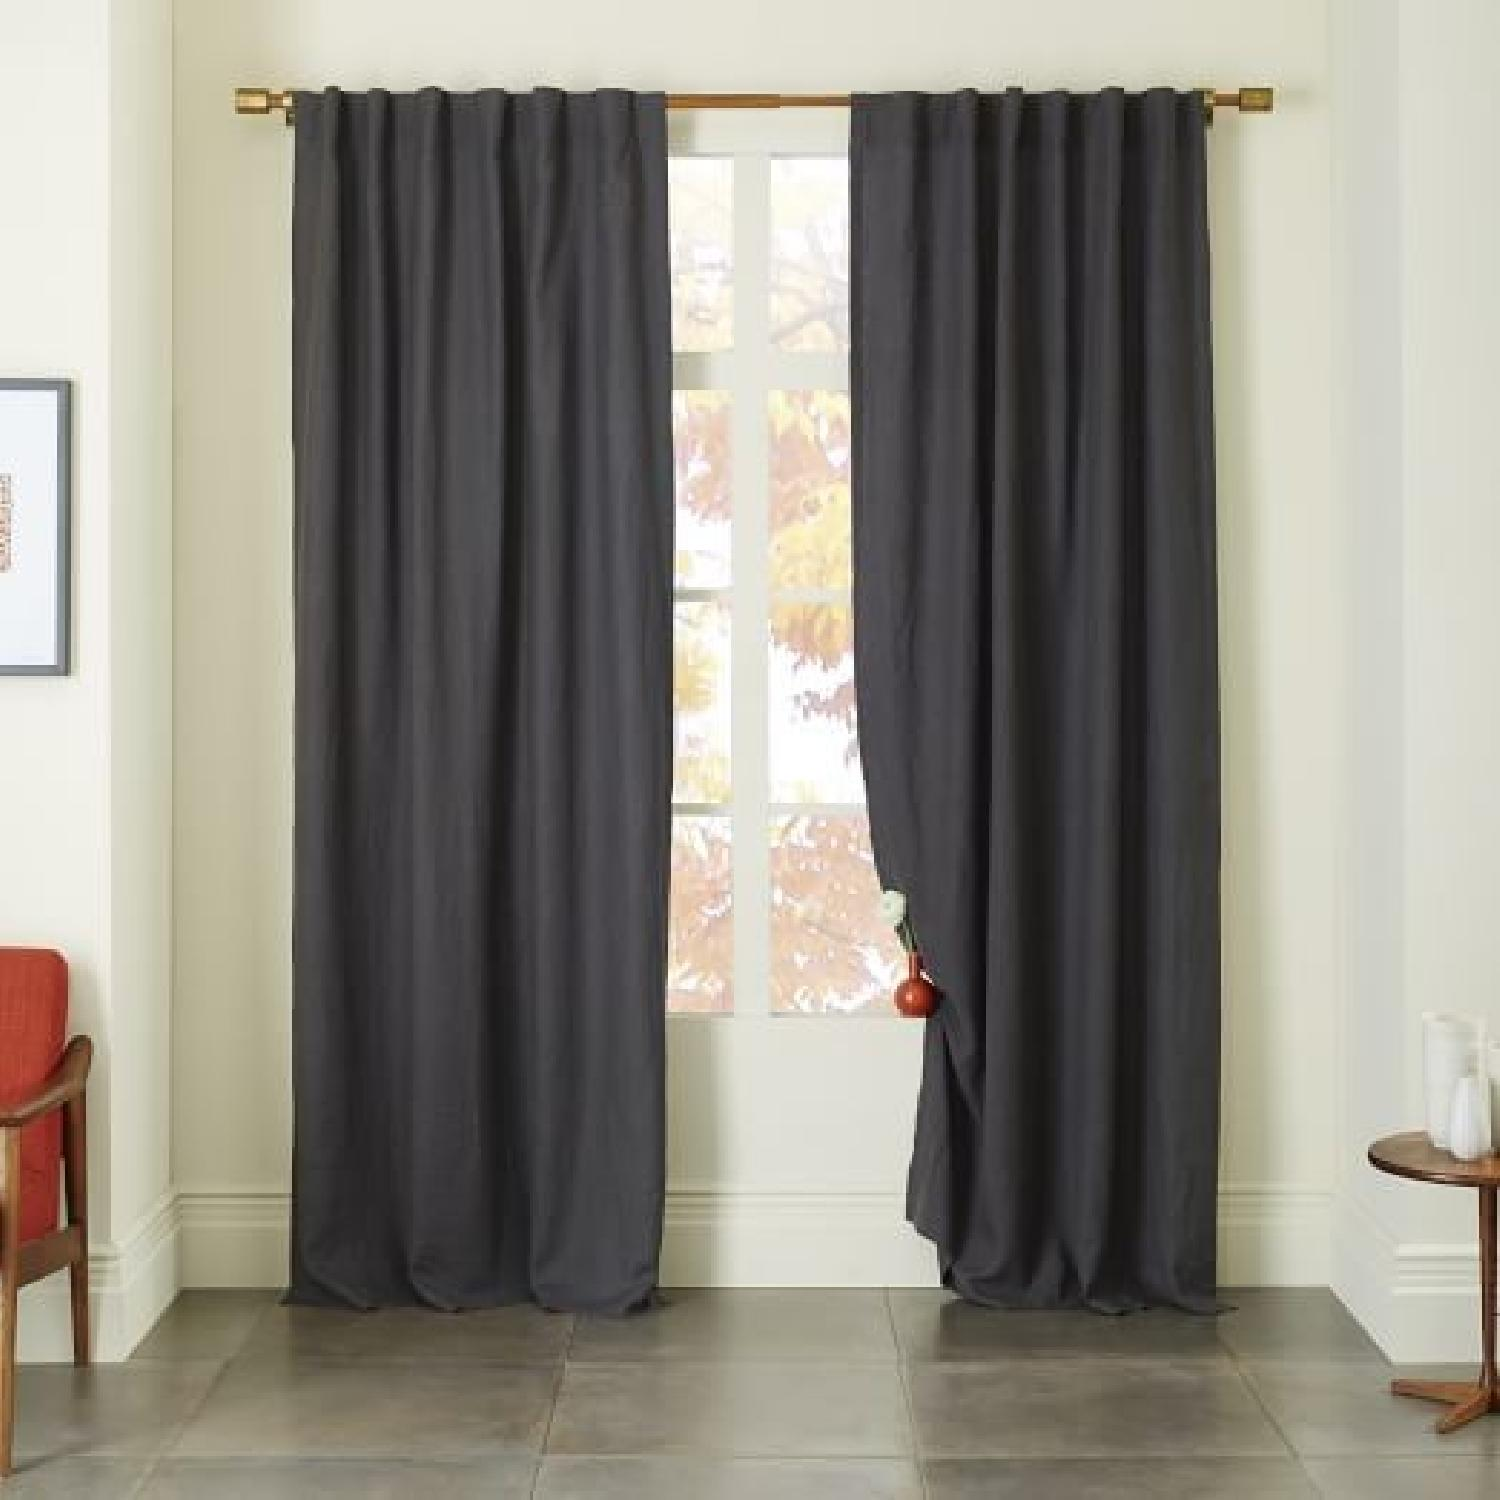 West Elm Belgian Linen Blackout Curtains w/ CB2 Curtain Rod-0